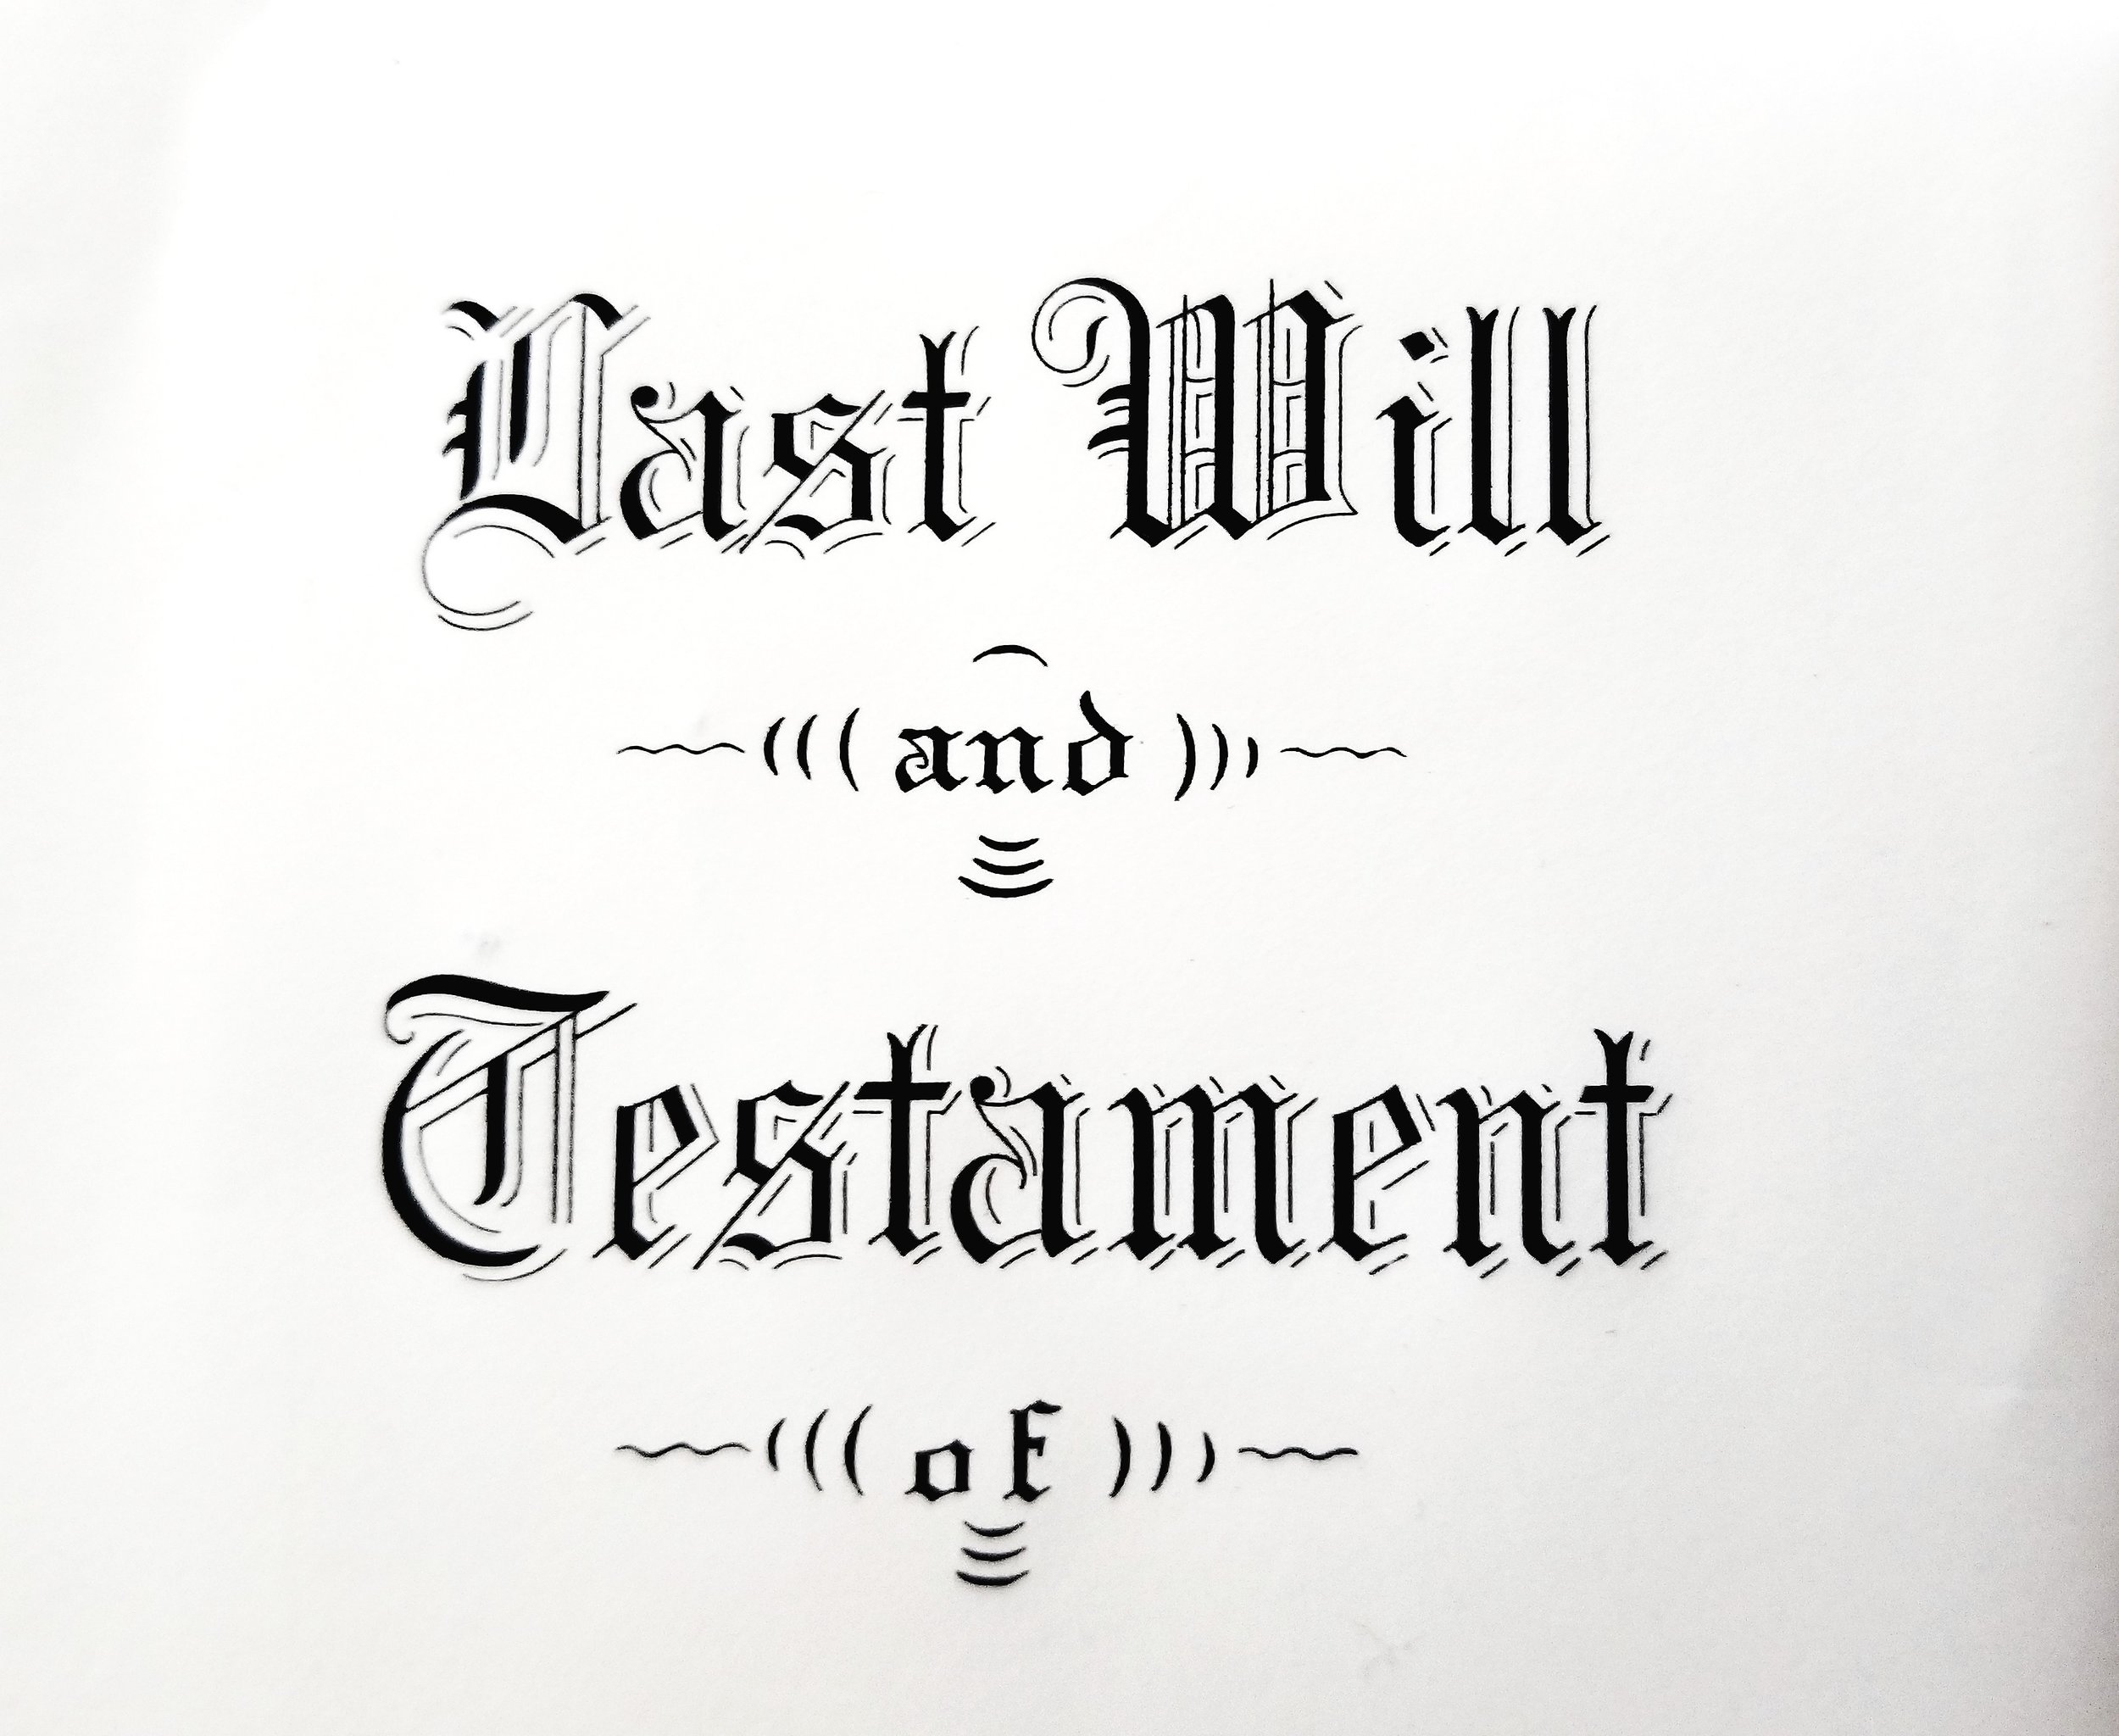 Last will and testament photo.jpg